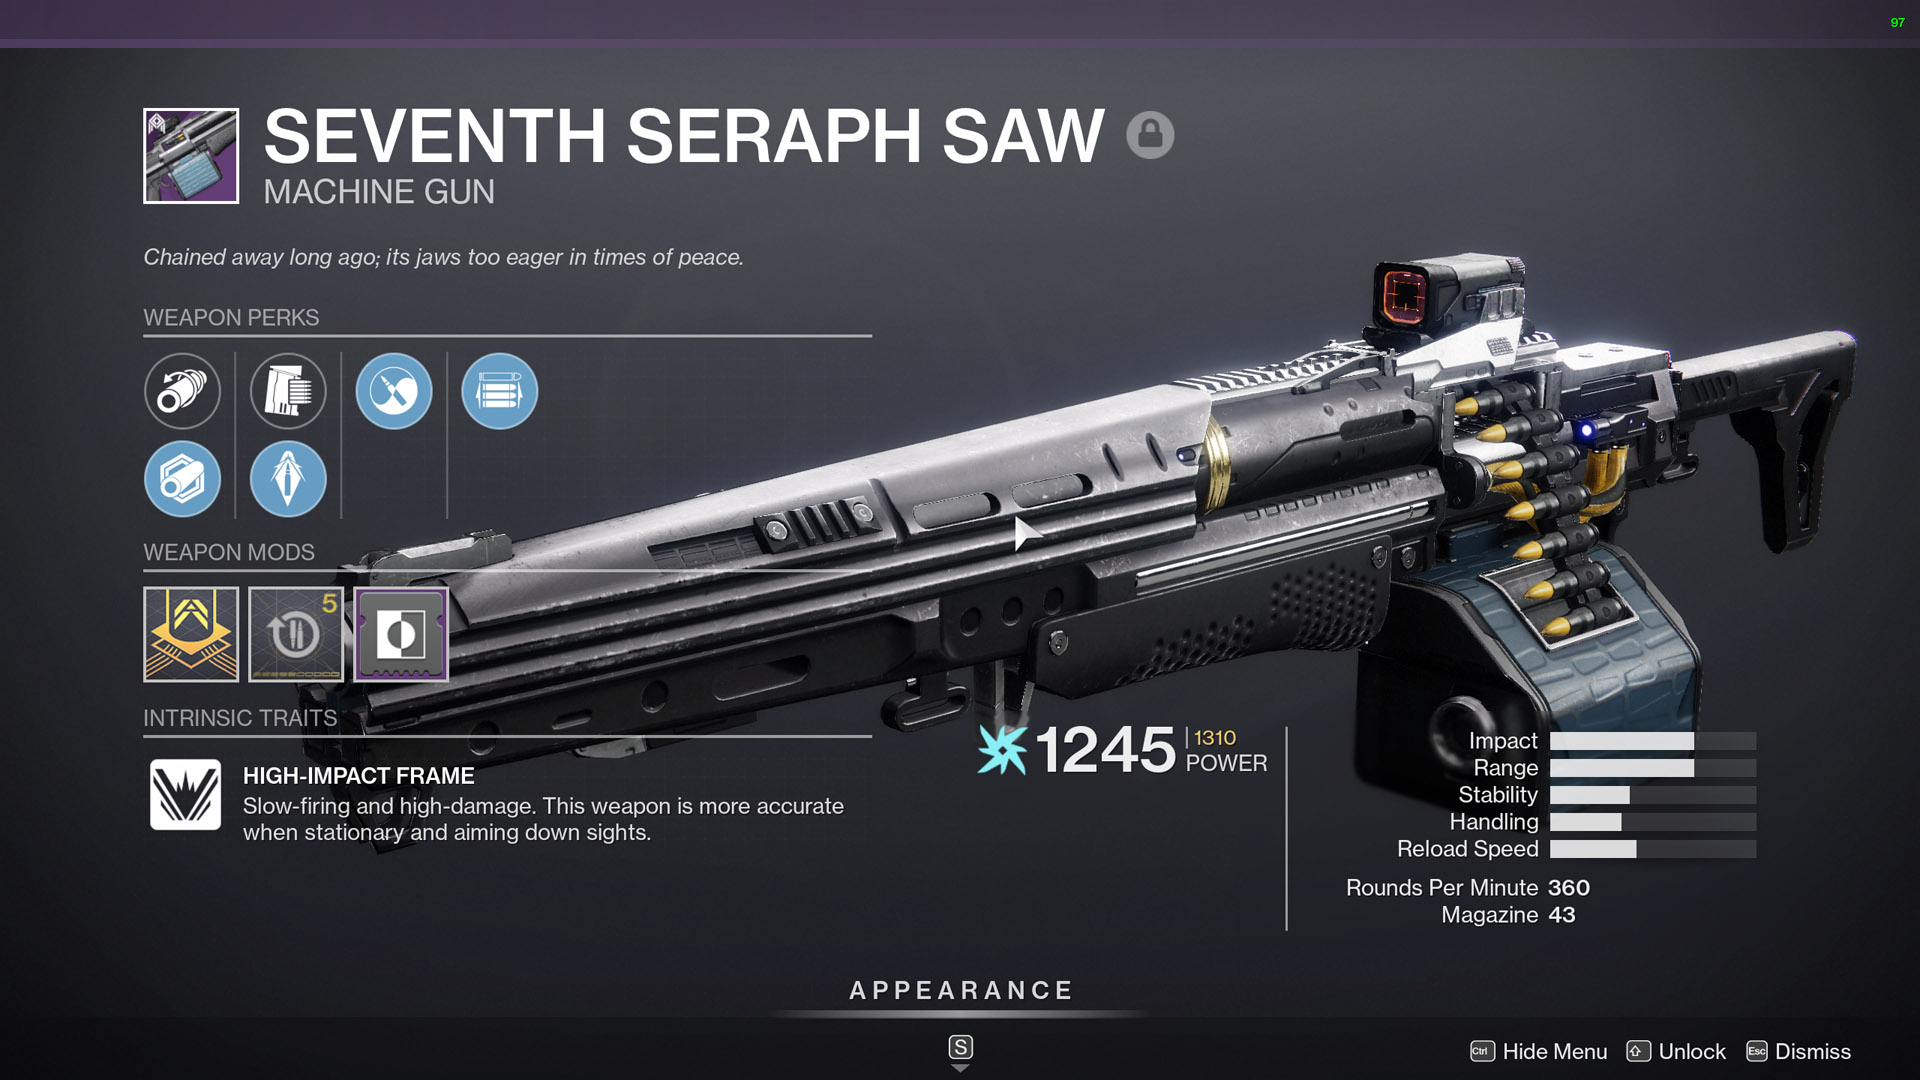 destiny 2 seventh seraph saw machine gun